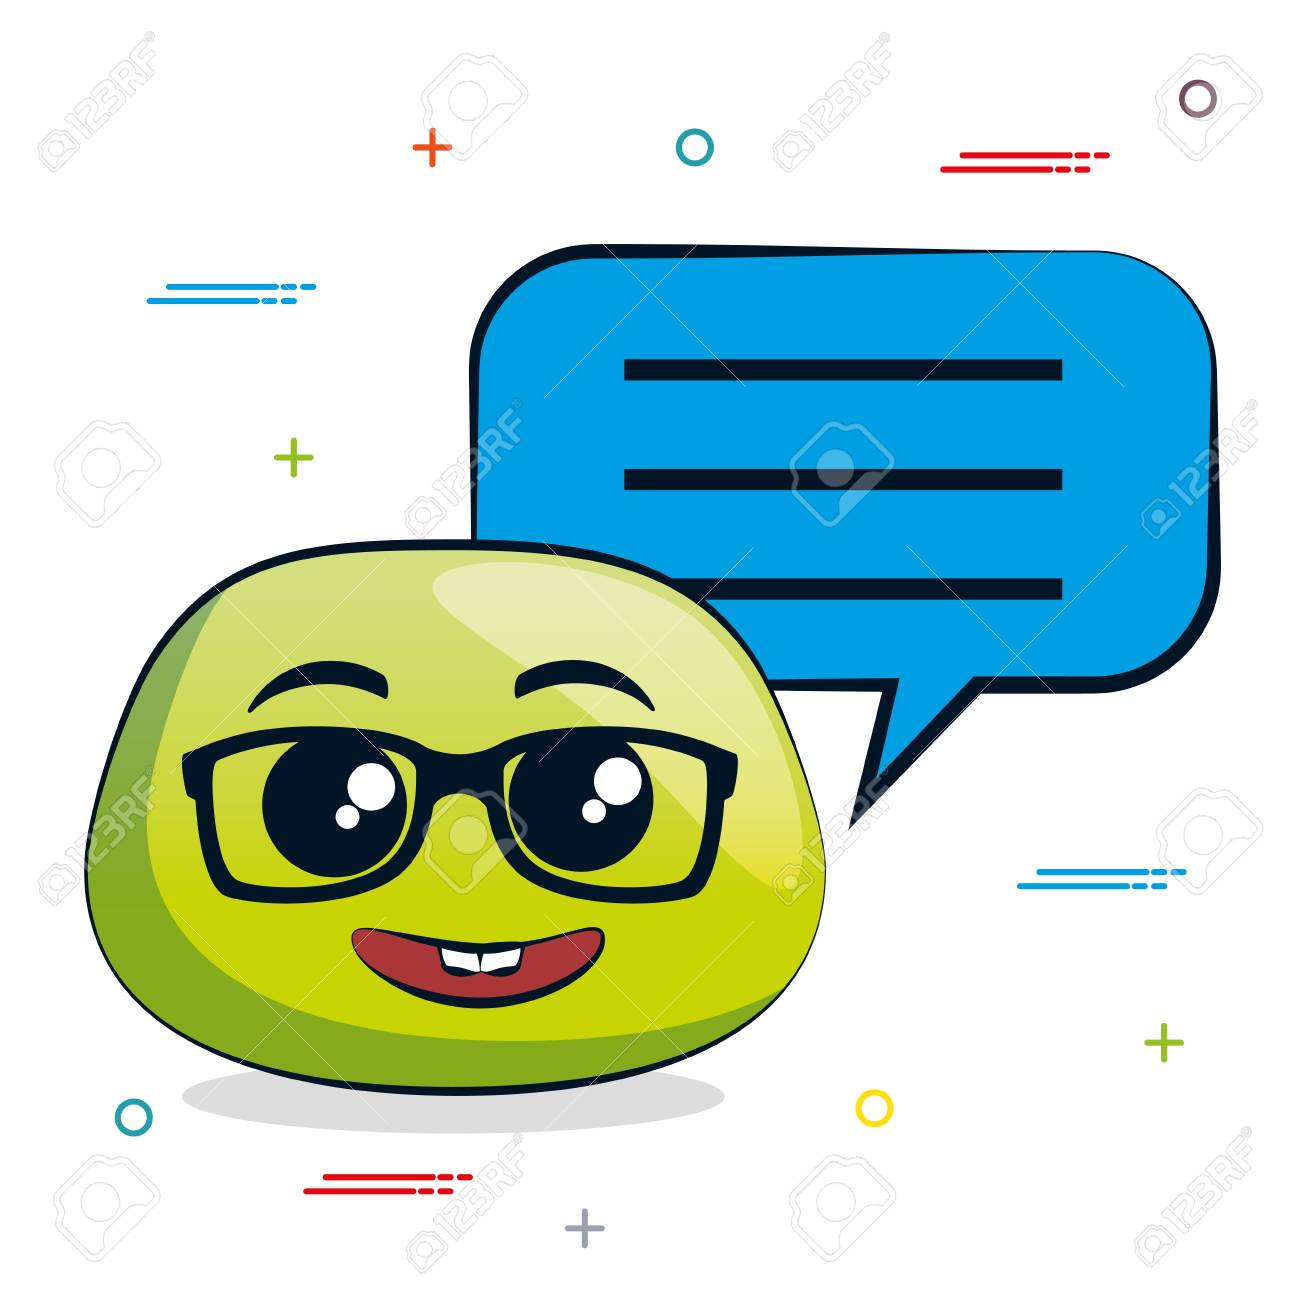 emoji message - Parfu kaptanband co